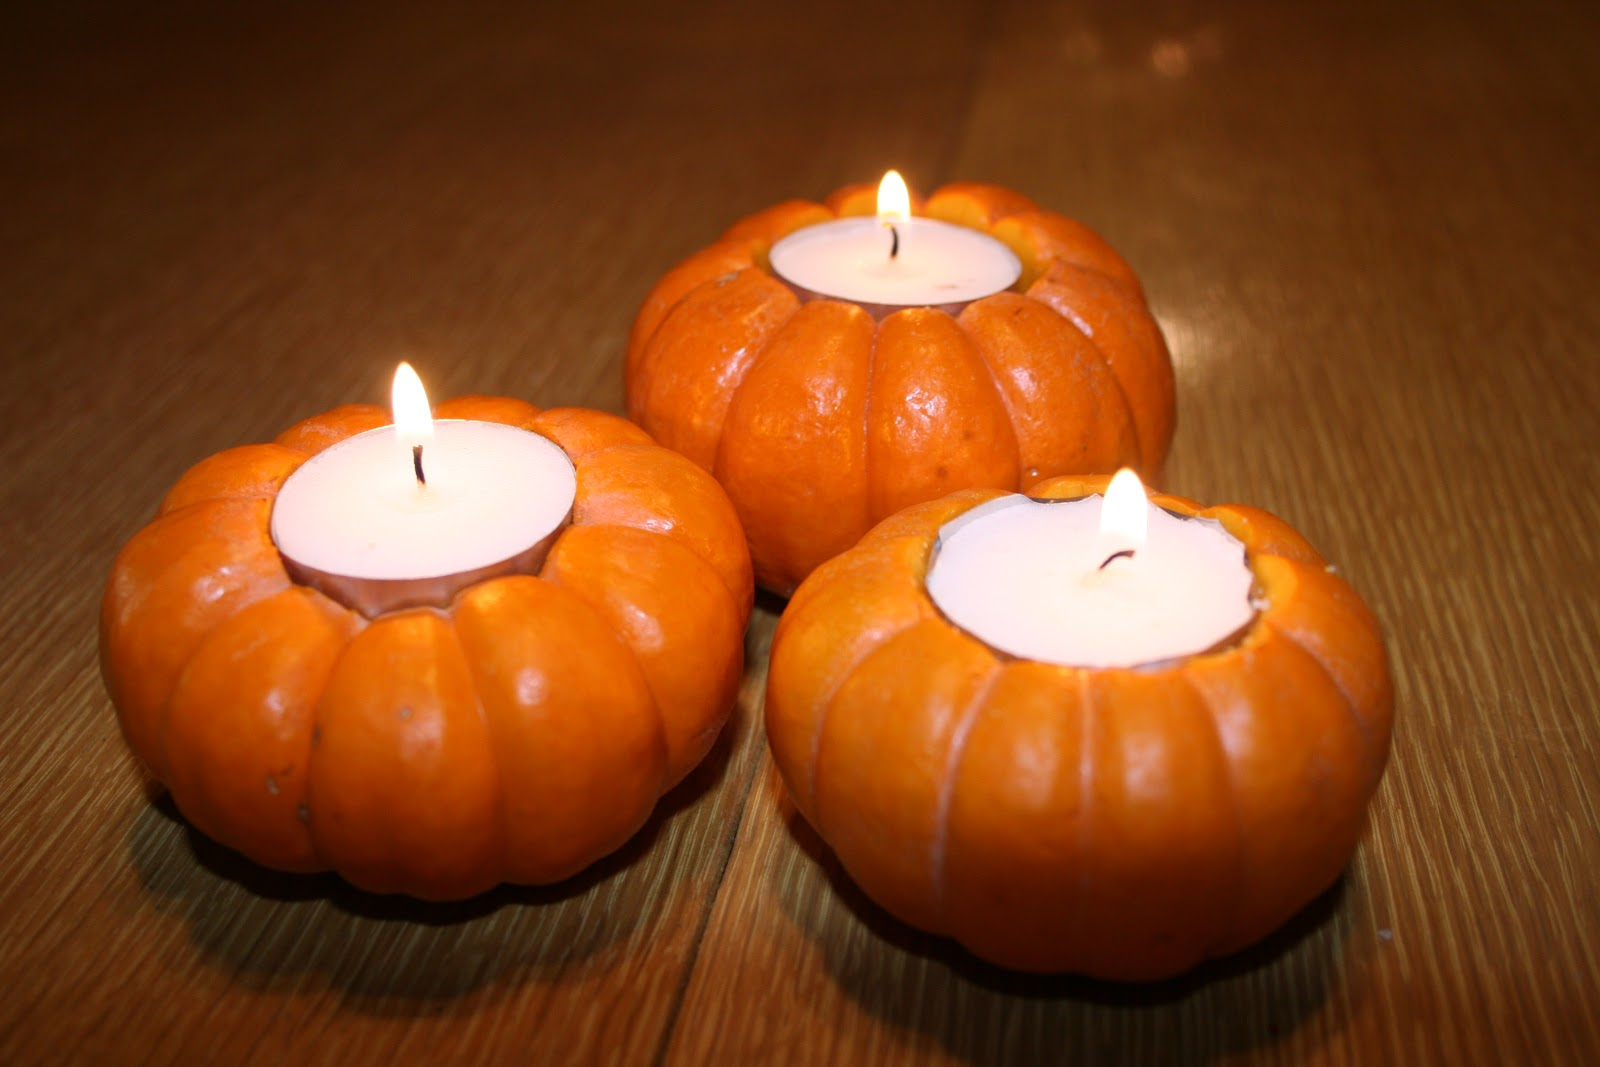 three-small-pumpkin-as-candle-holder-thanksgiving-diy-decor-wooden-table-thanksgiving-diy-decor-decorating-fabulous-thanksgiving-diy-decor-inspiration